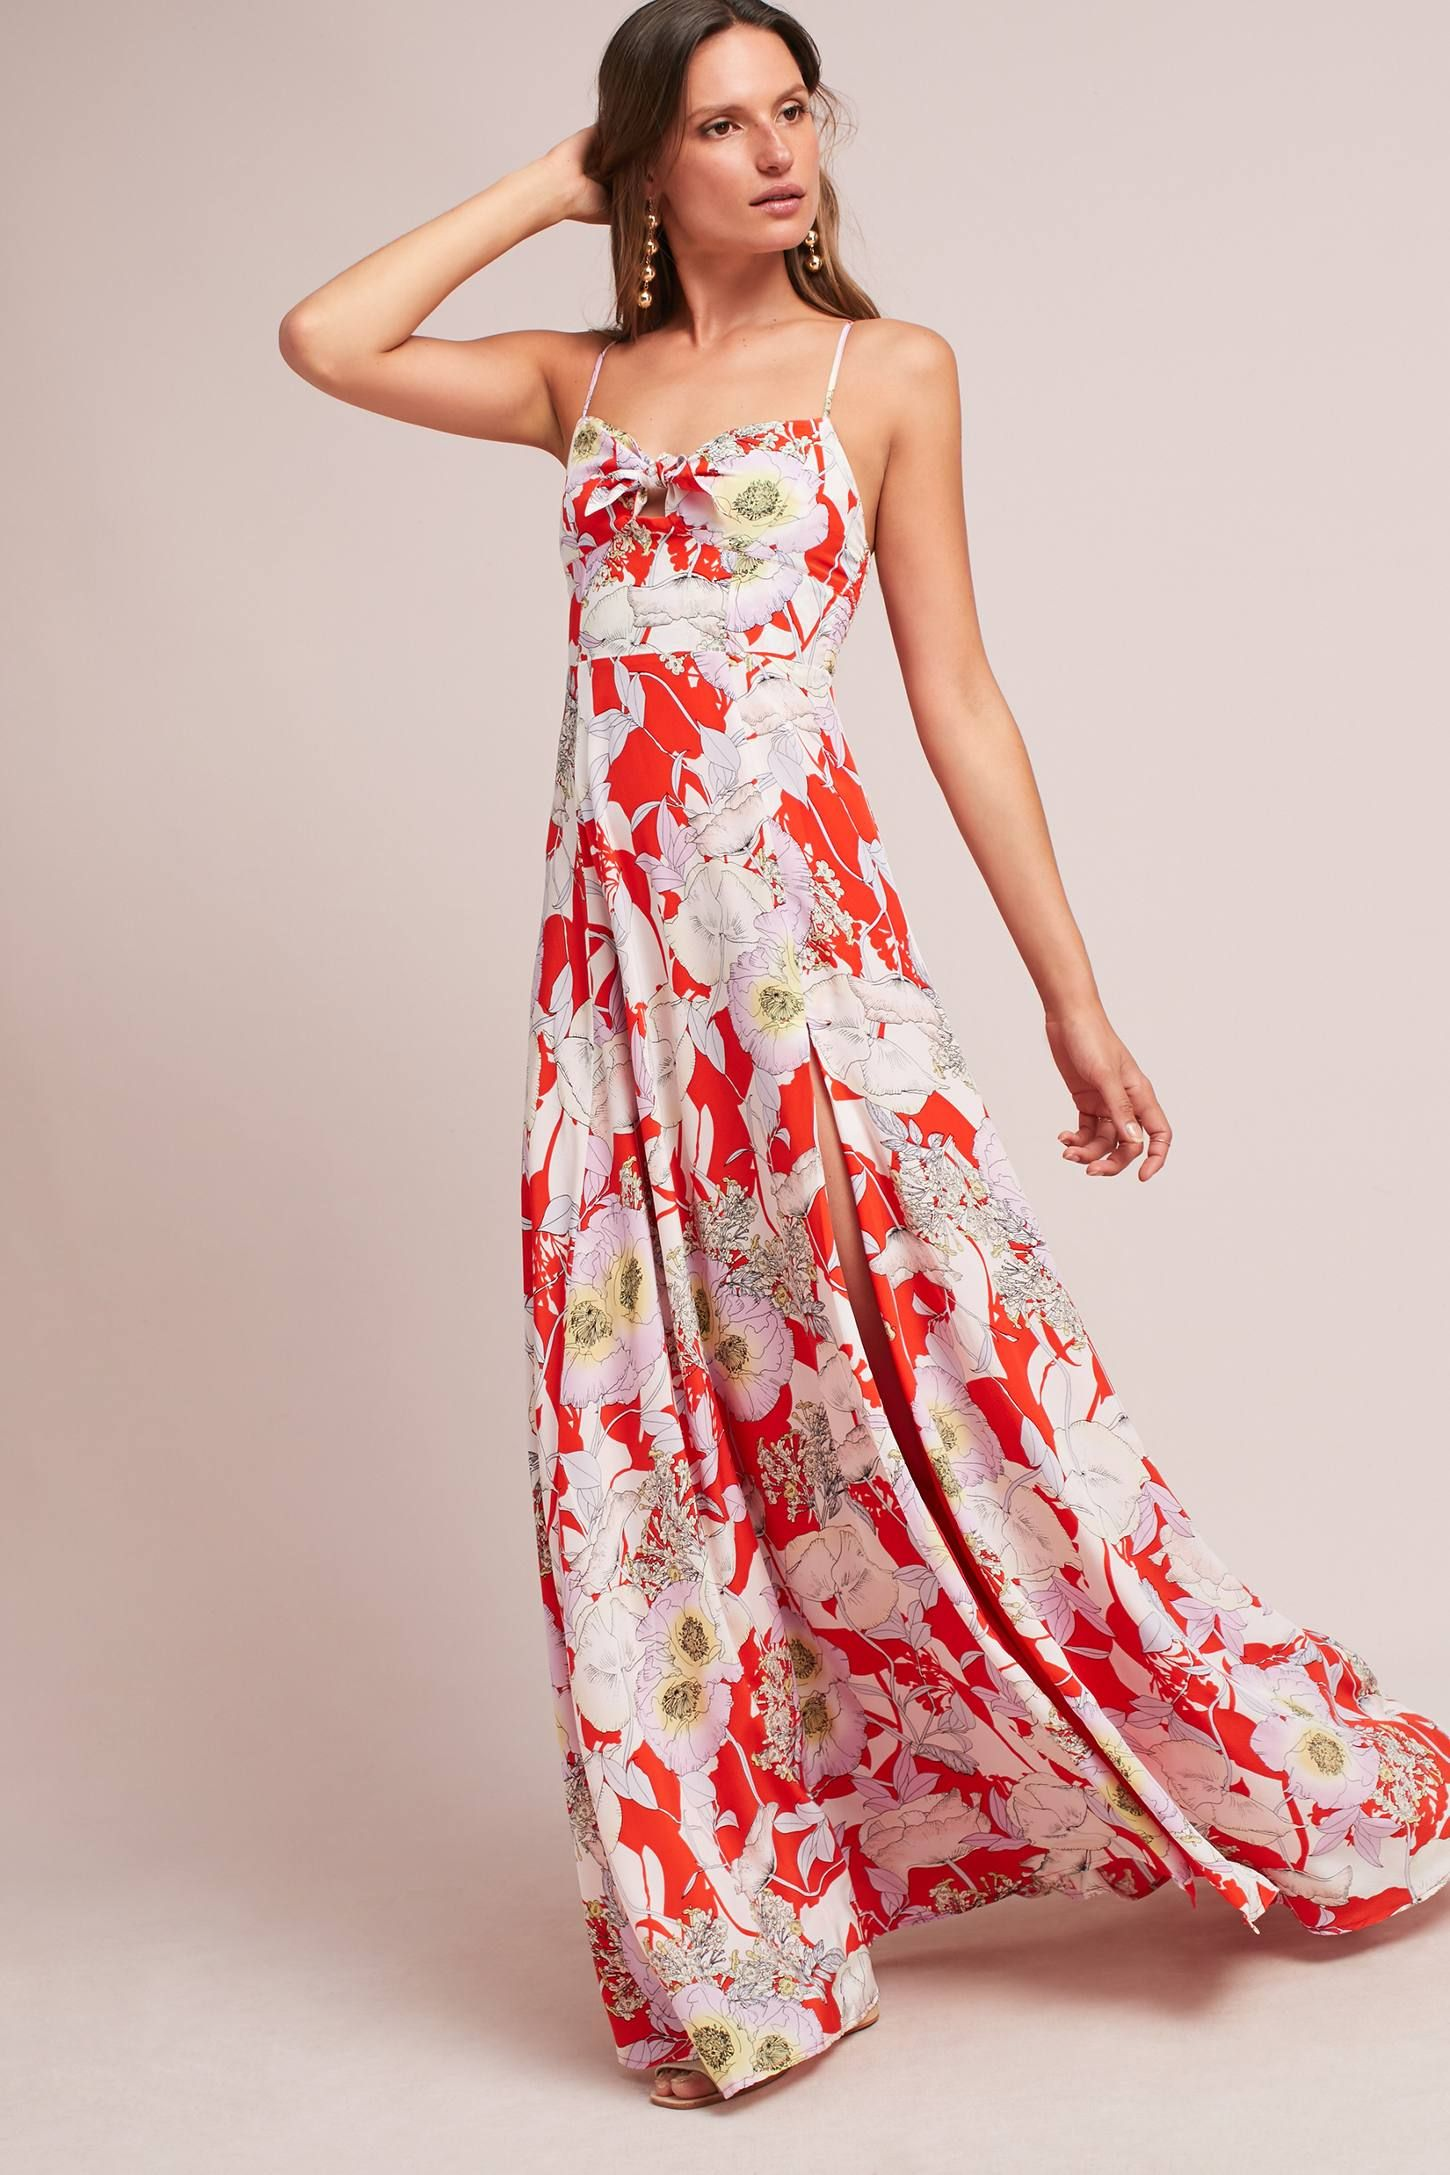 cd391c48e4db Shop the Rio Silk Maxi Dress and more Anthropologie at Anthropologie today.  Read customer reviews, discover product details and more.